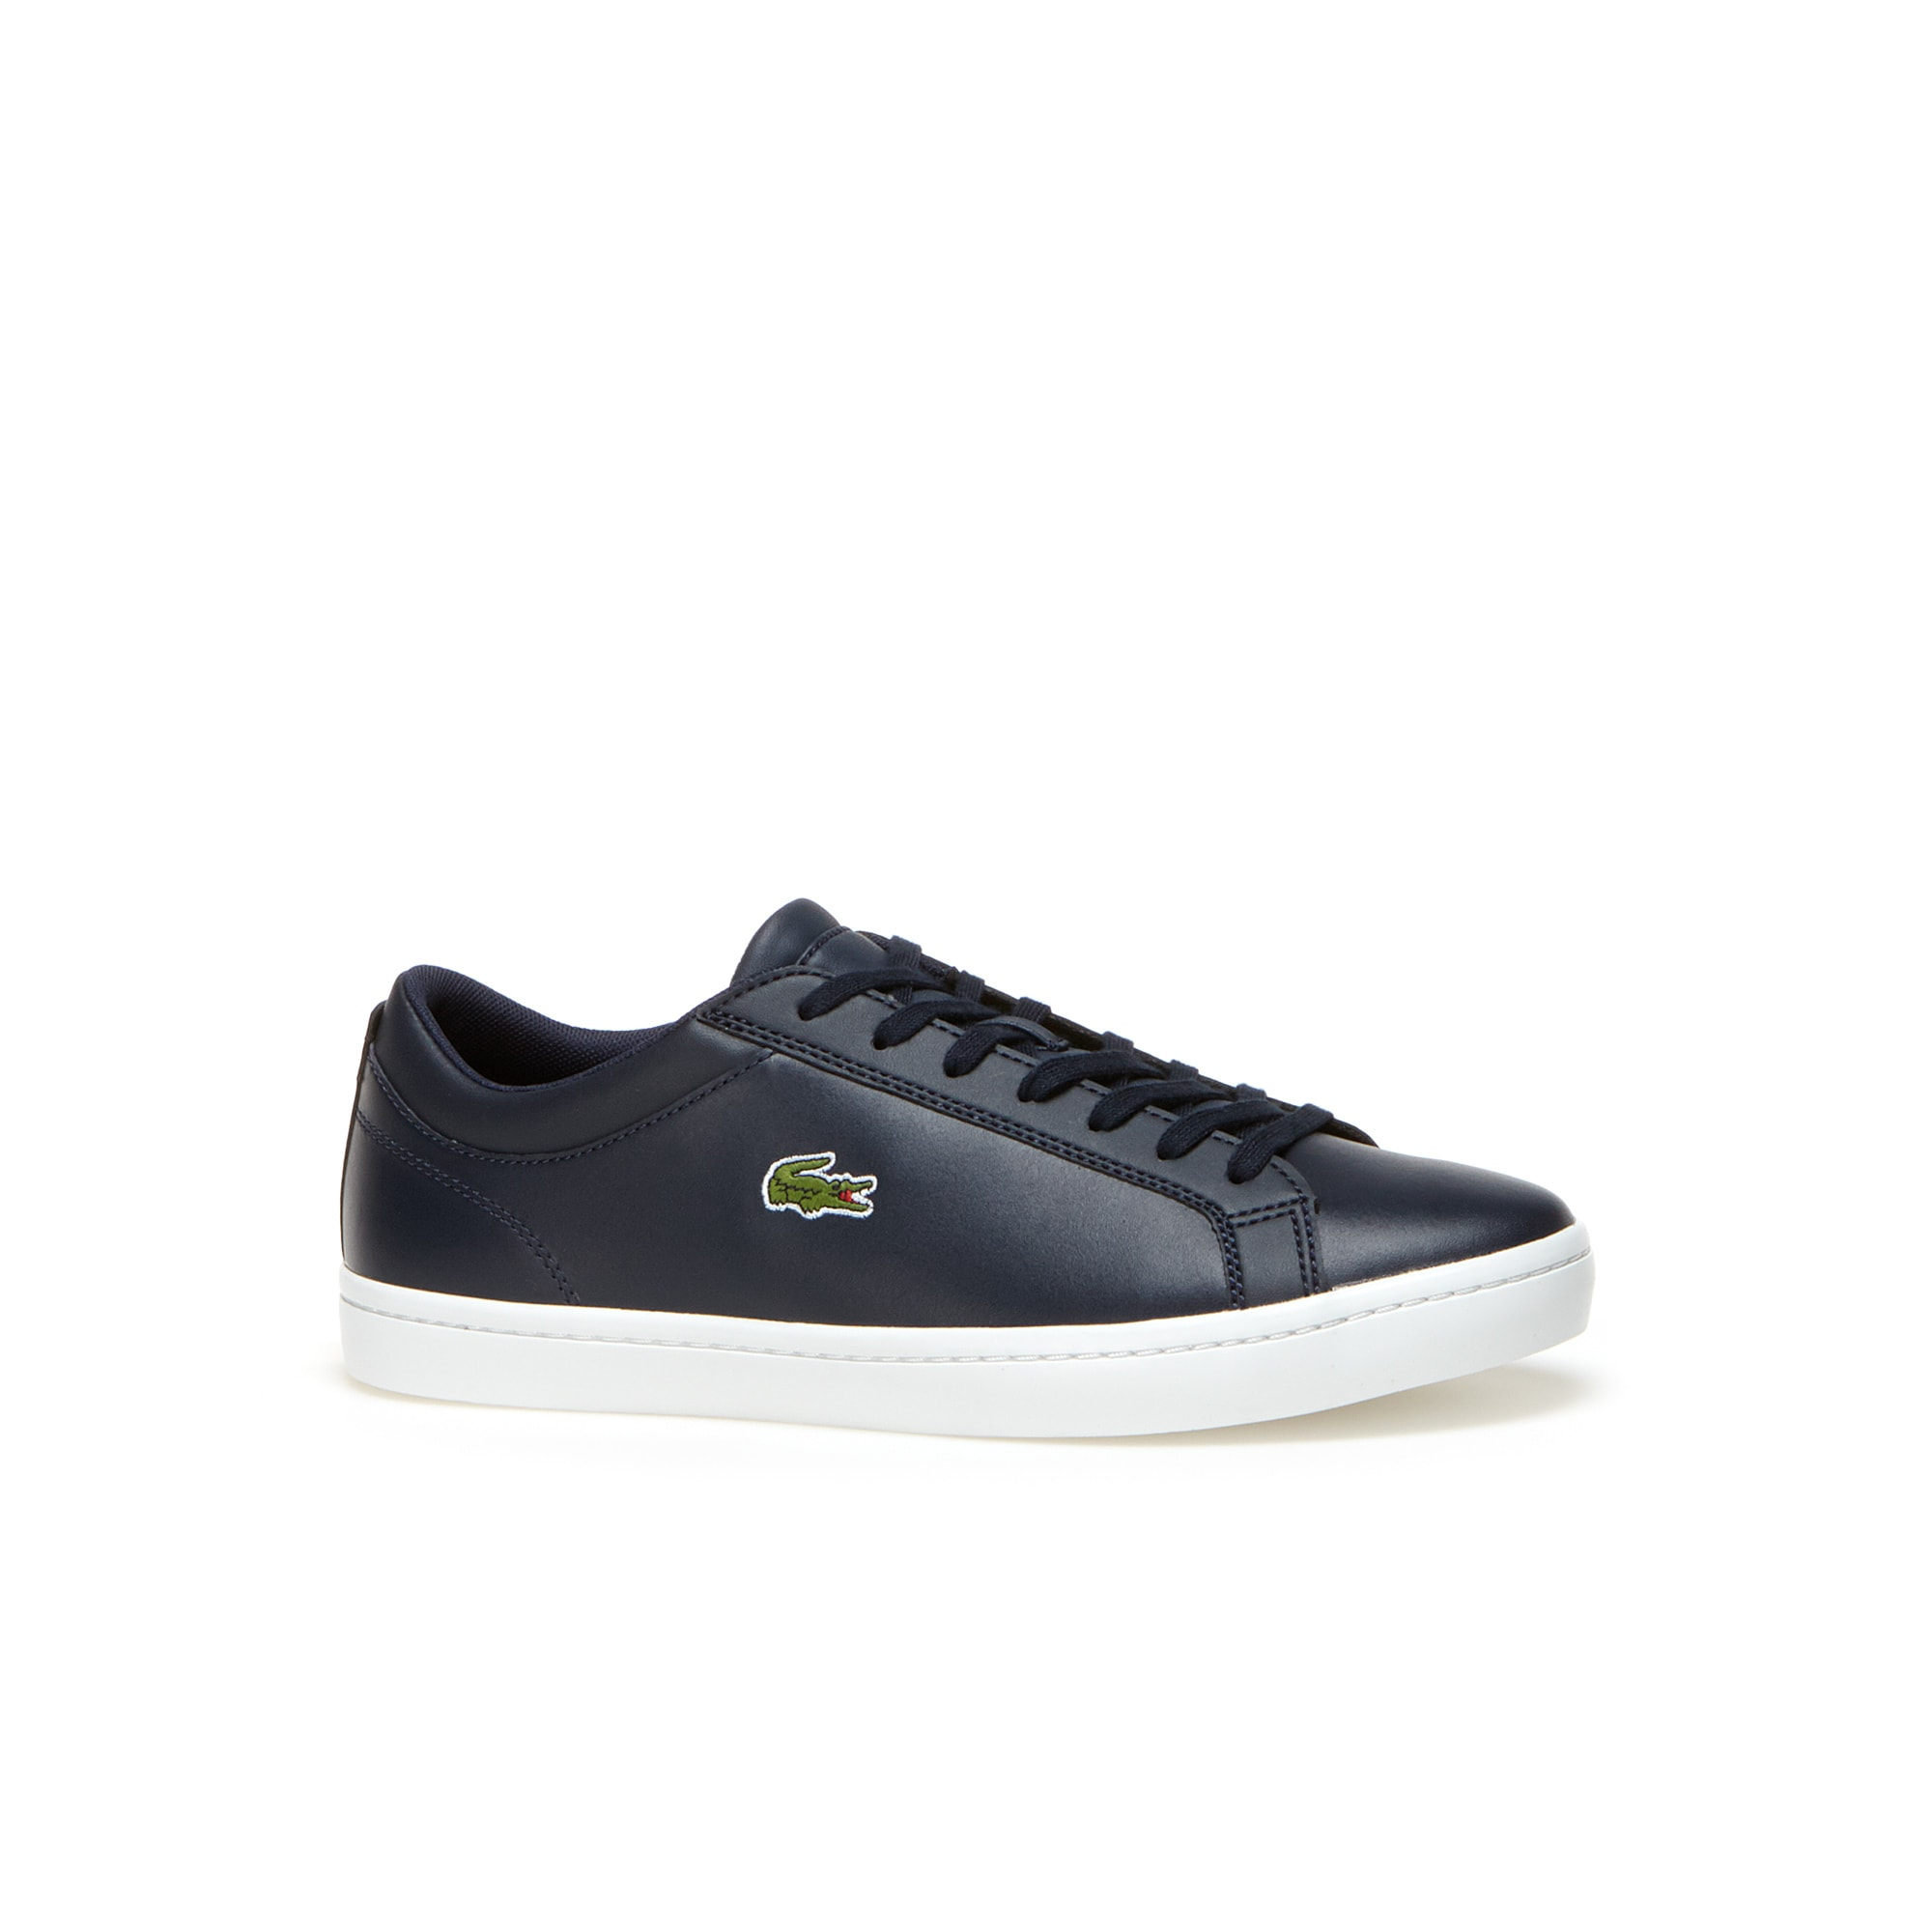 e352c72e3172af + 1 color · Men s Straightset Leather Trainers